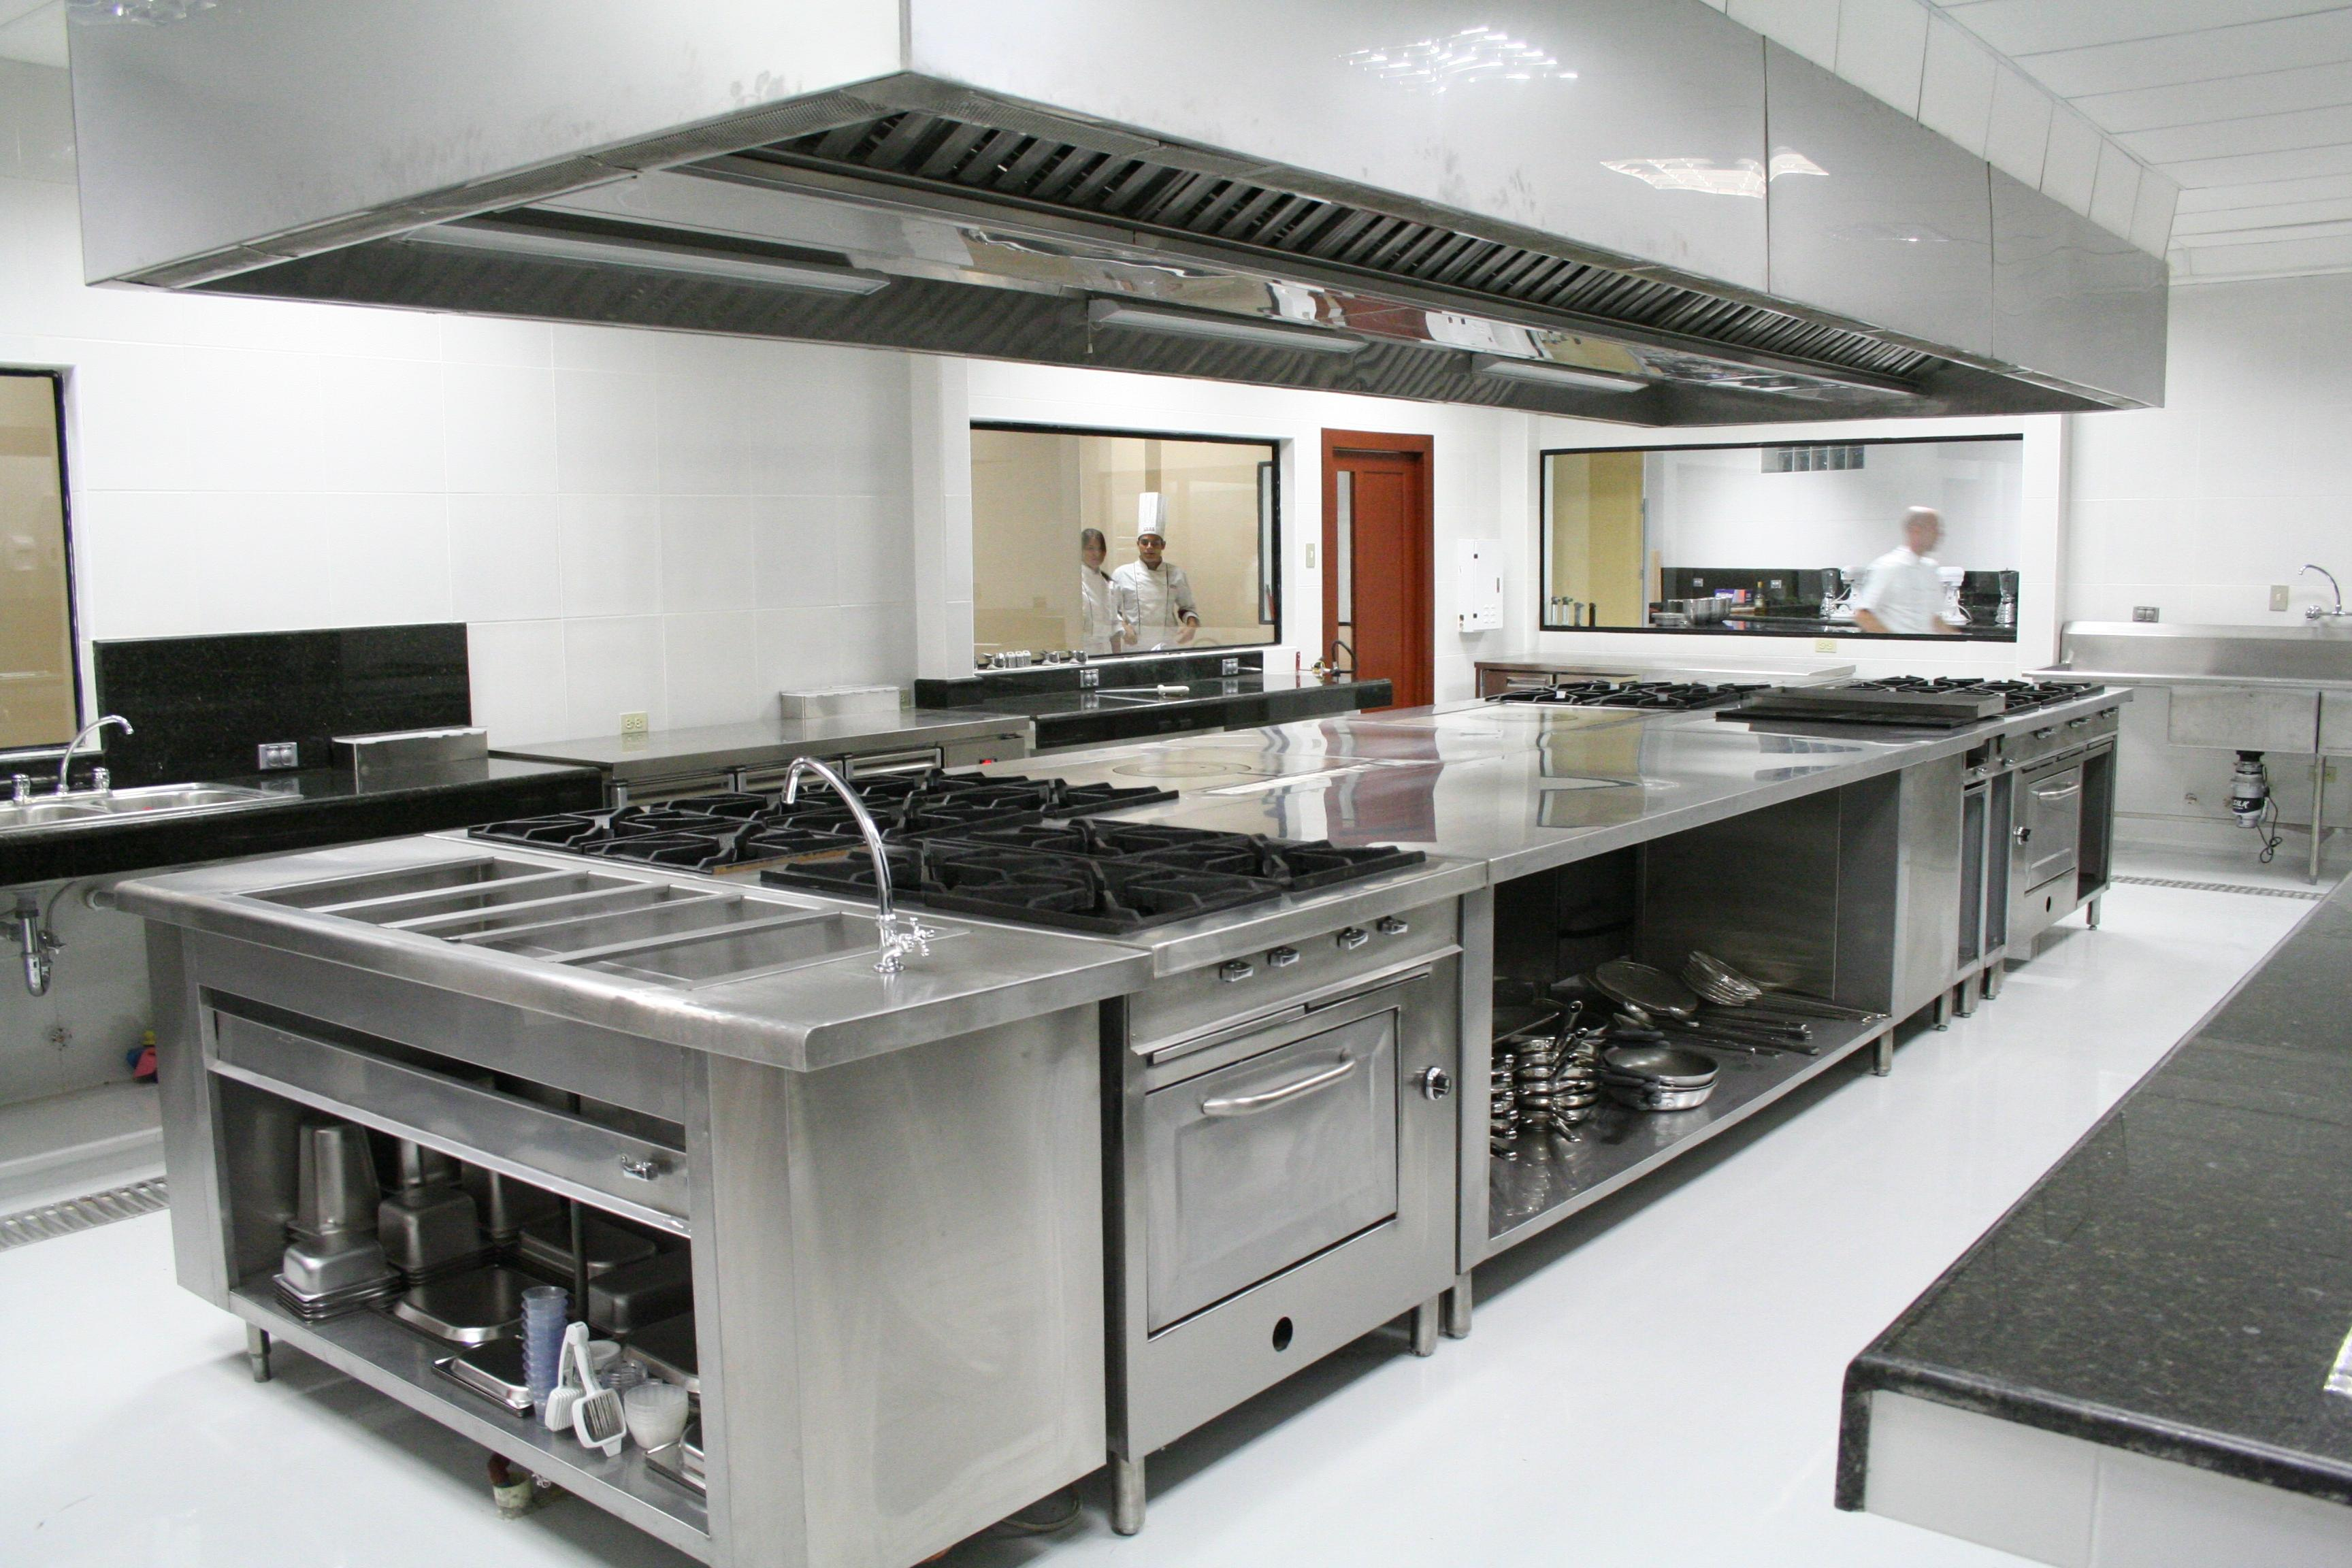 How To Plan A Commercial Kitchen Design?